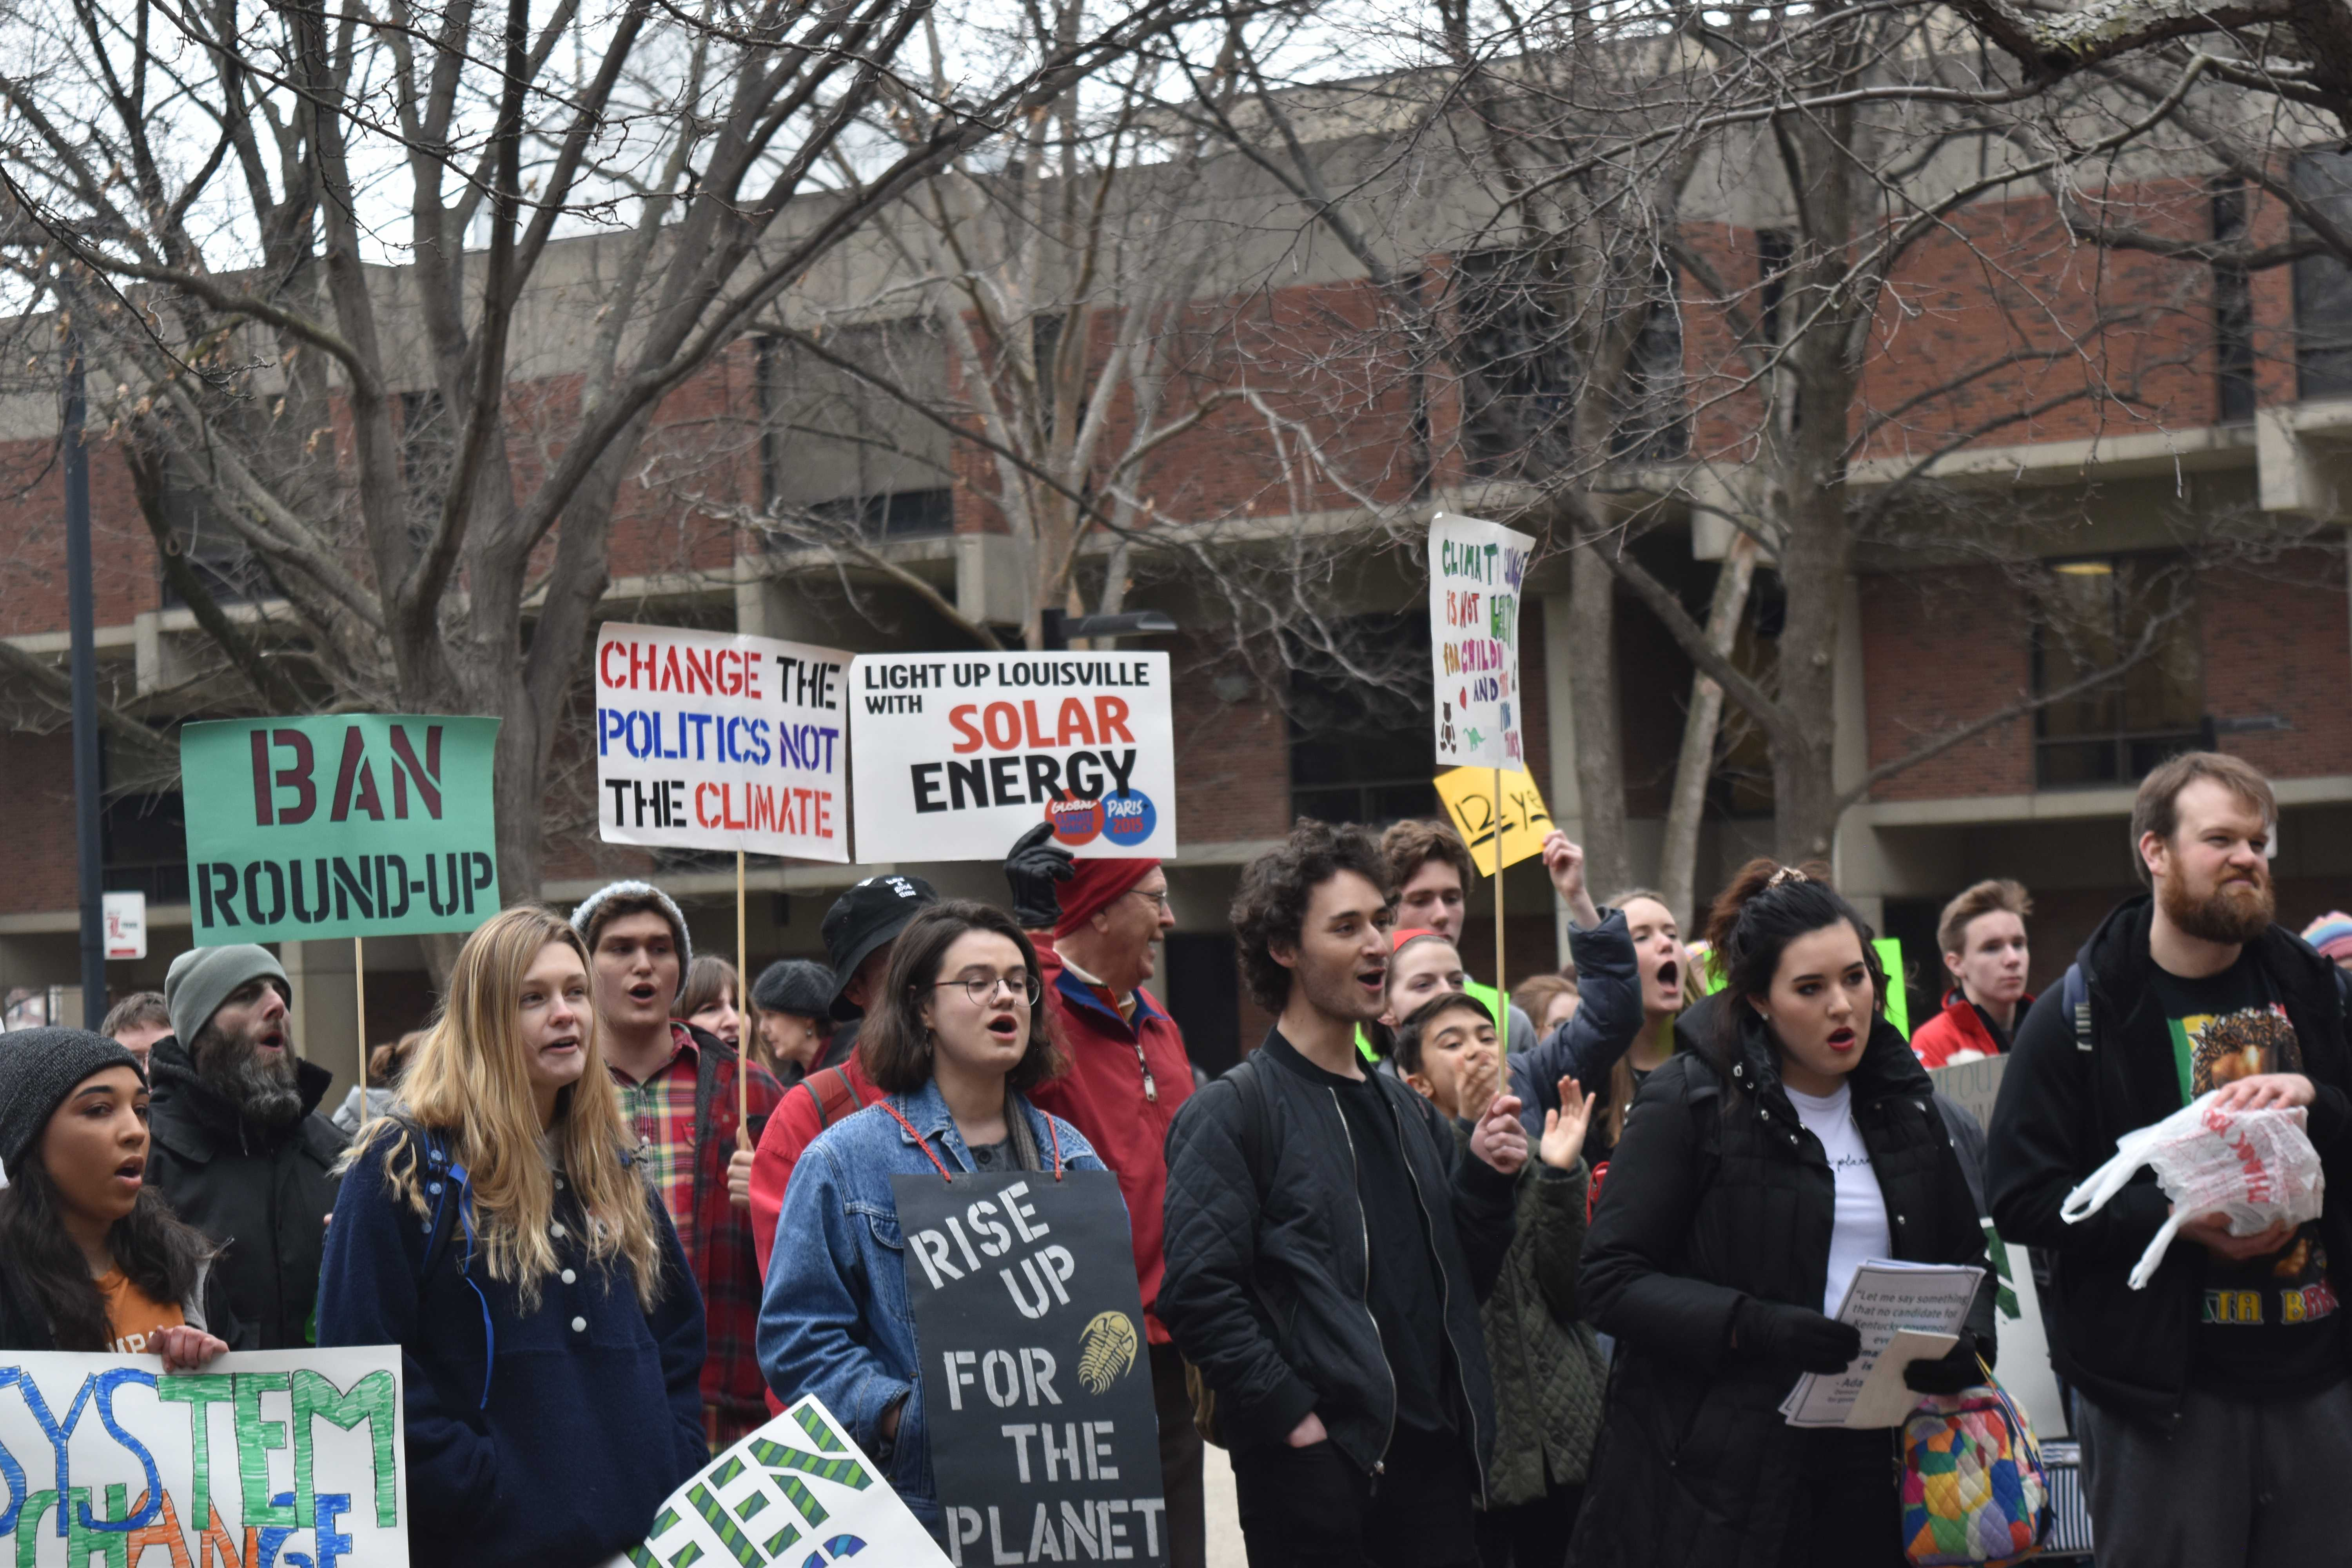 Two students contest one day suspensions after climate change walkout